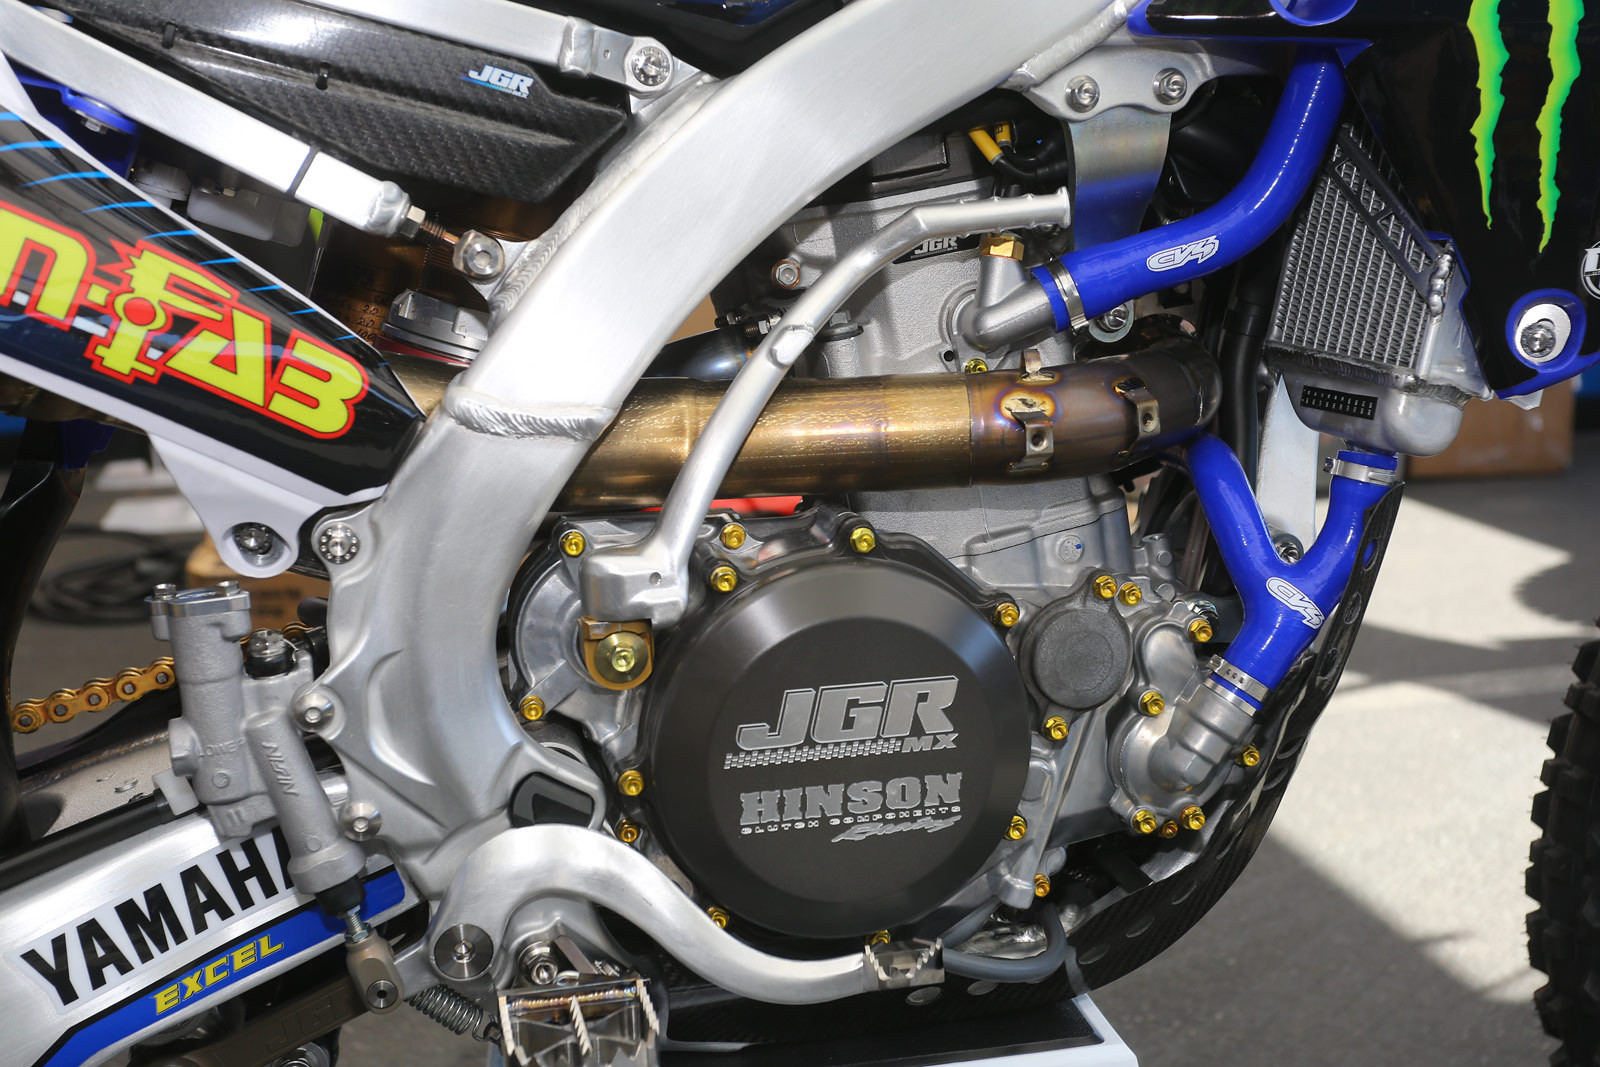 AutoTrader.com/Toyota/Yamaha - Vital MX Pit Bits: Anaheim 1 - Motocross Pictures - Vital MX